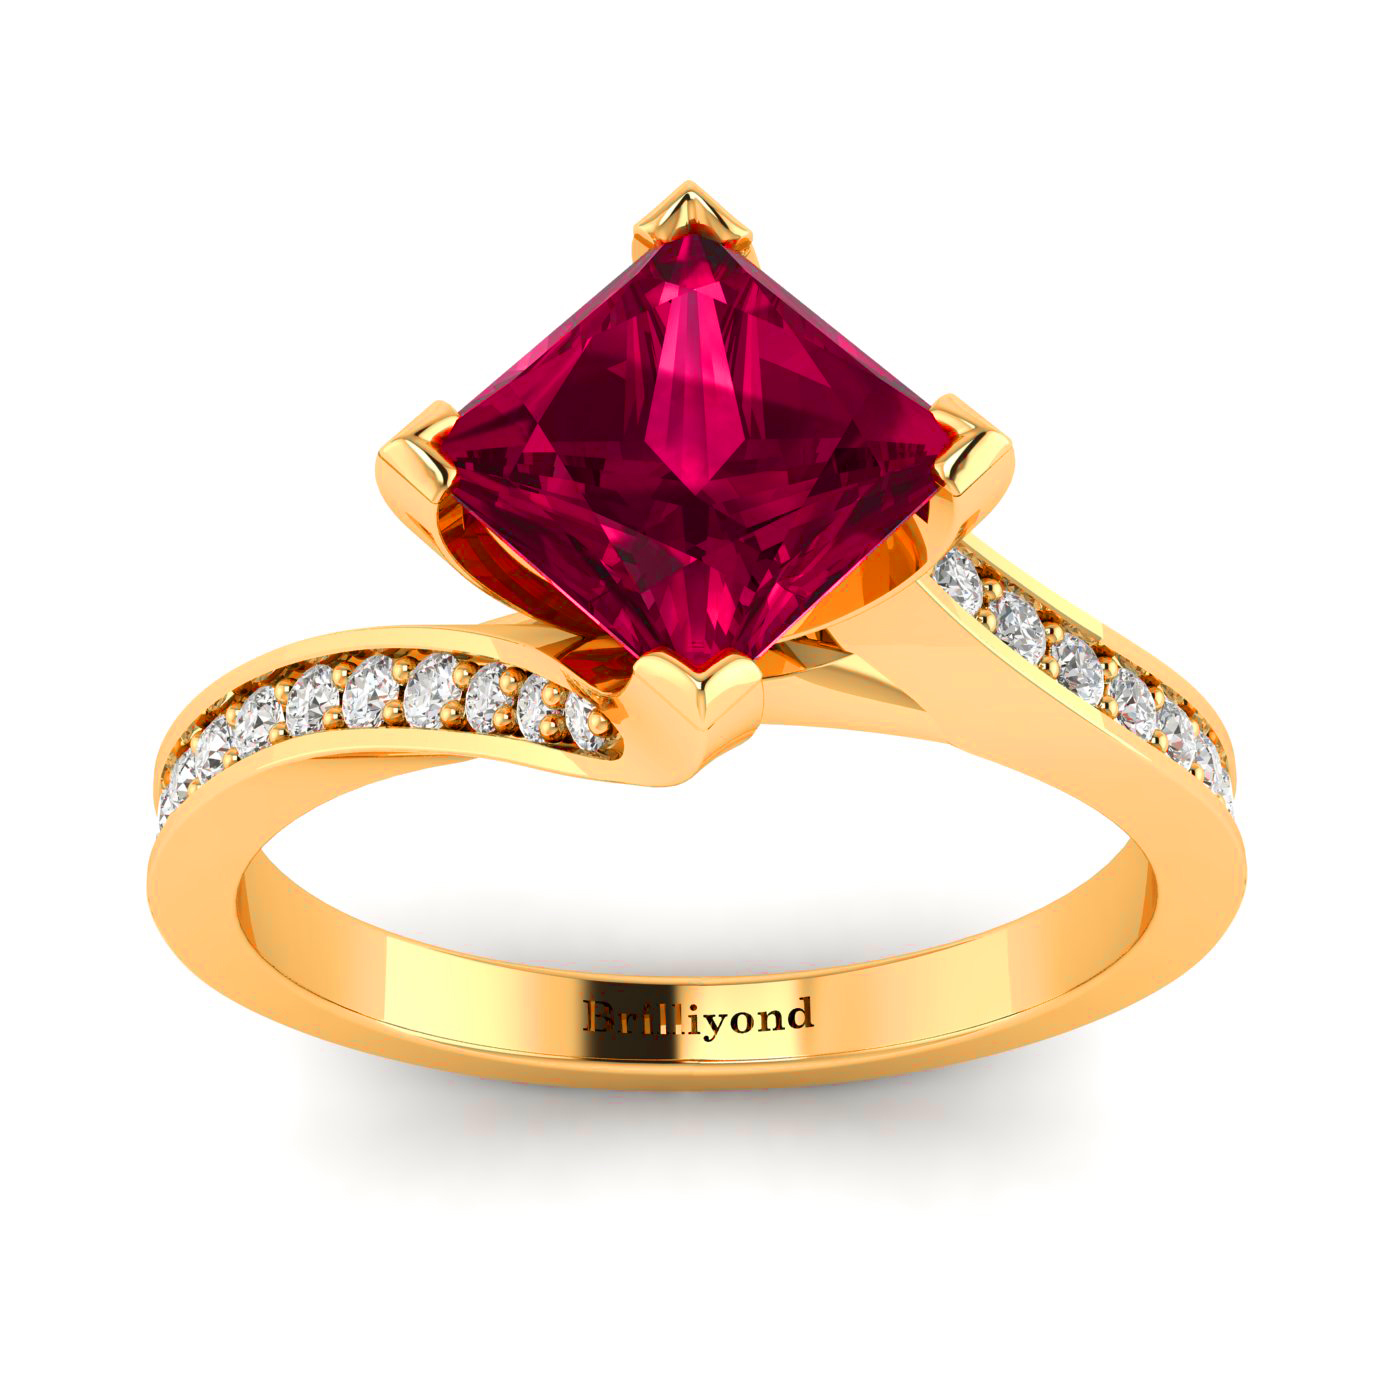 Cushion Cut Ruby Ring with 22 Diamond Accents